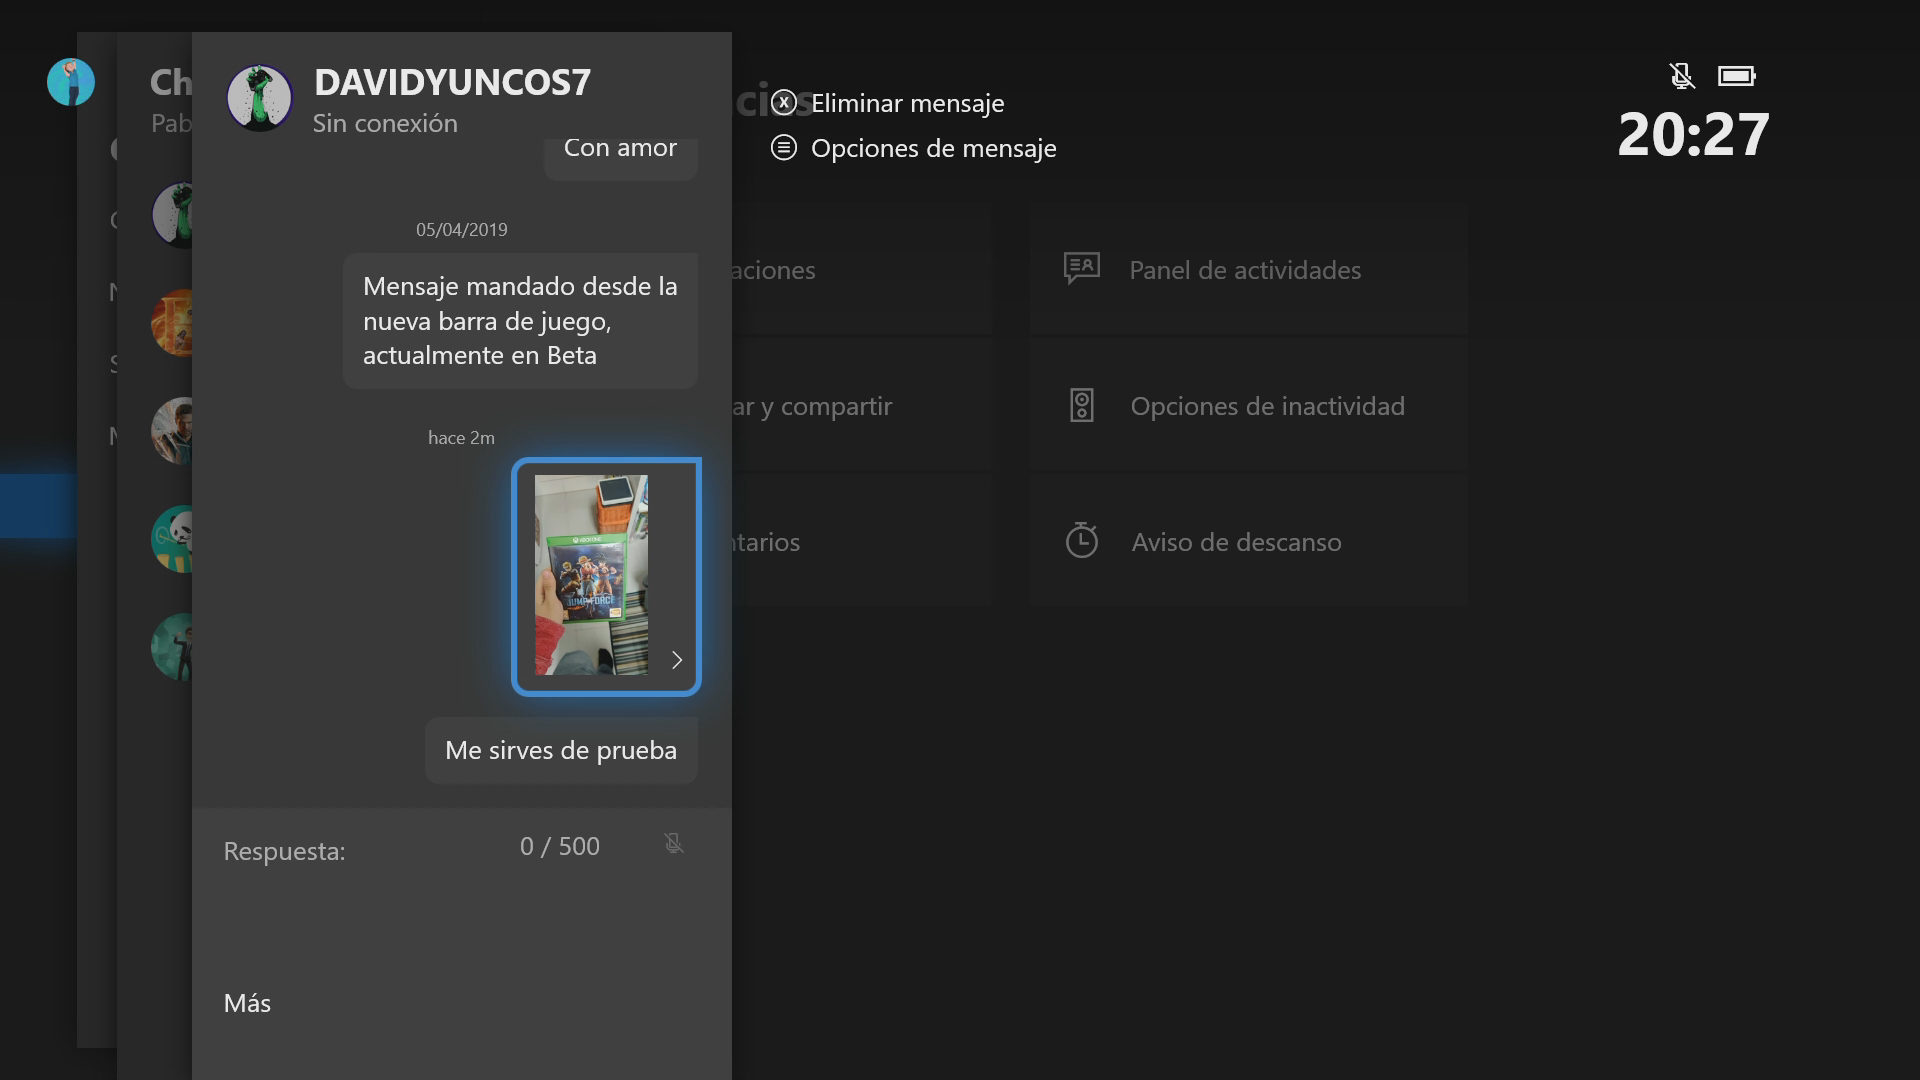 Visualizar-fotos-en-el-chat-en-Xbox-One-Insider